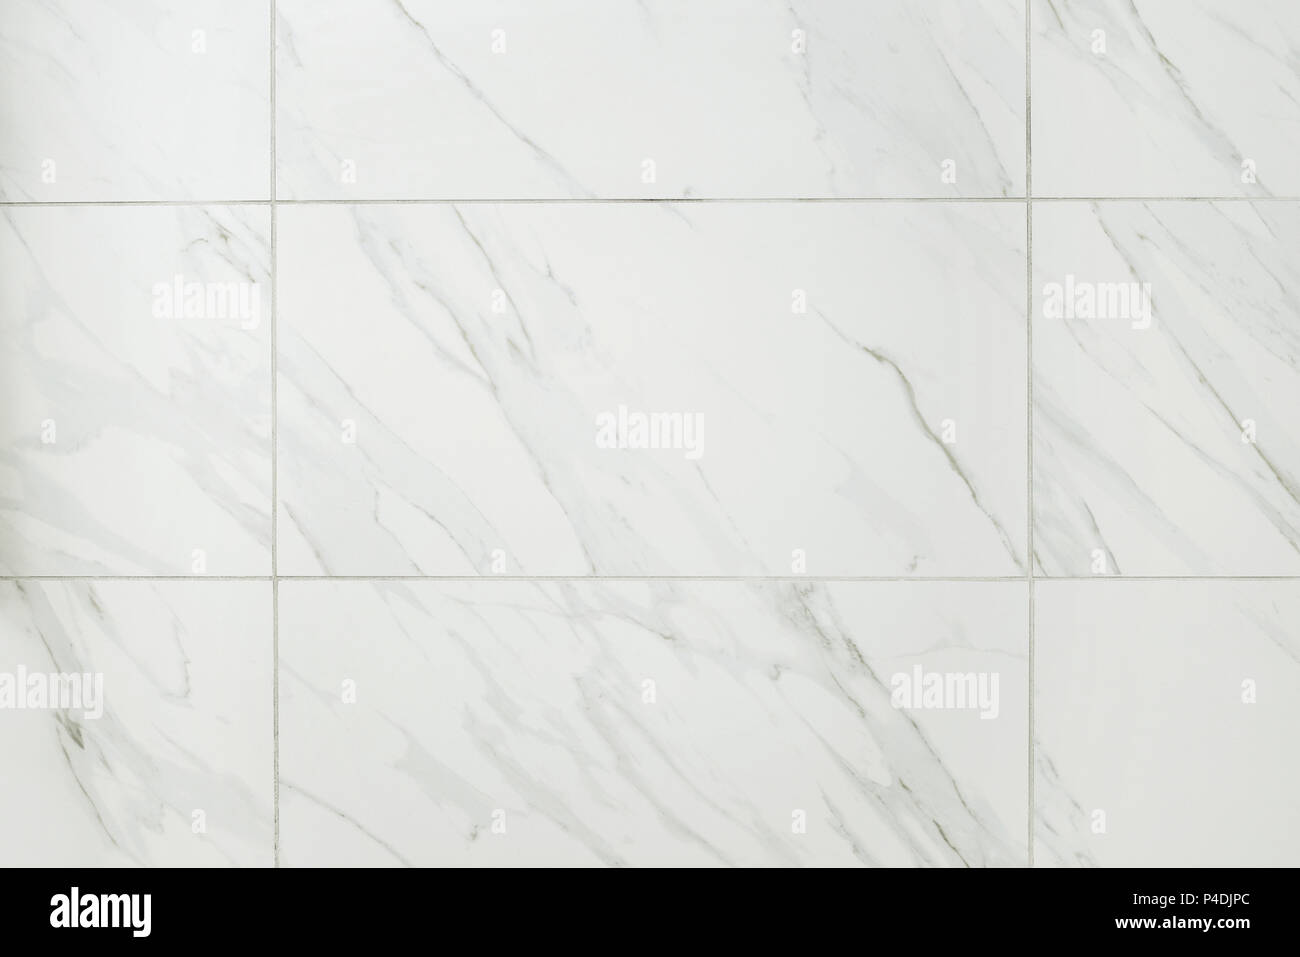 Large Marble Tile Bathroom Wall Stock Photo Alamy